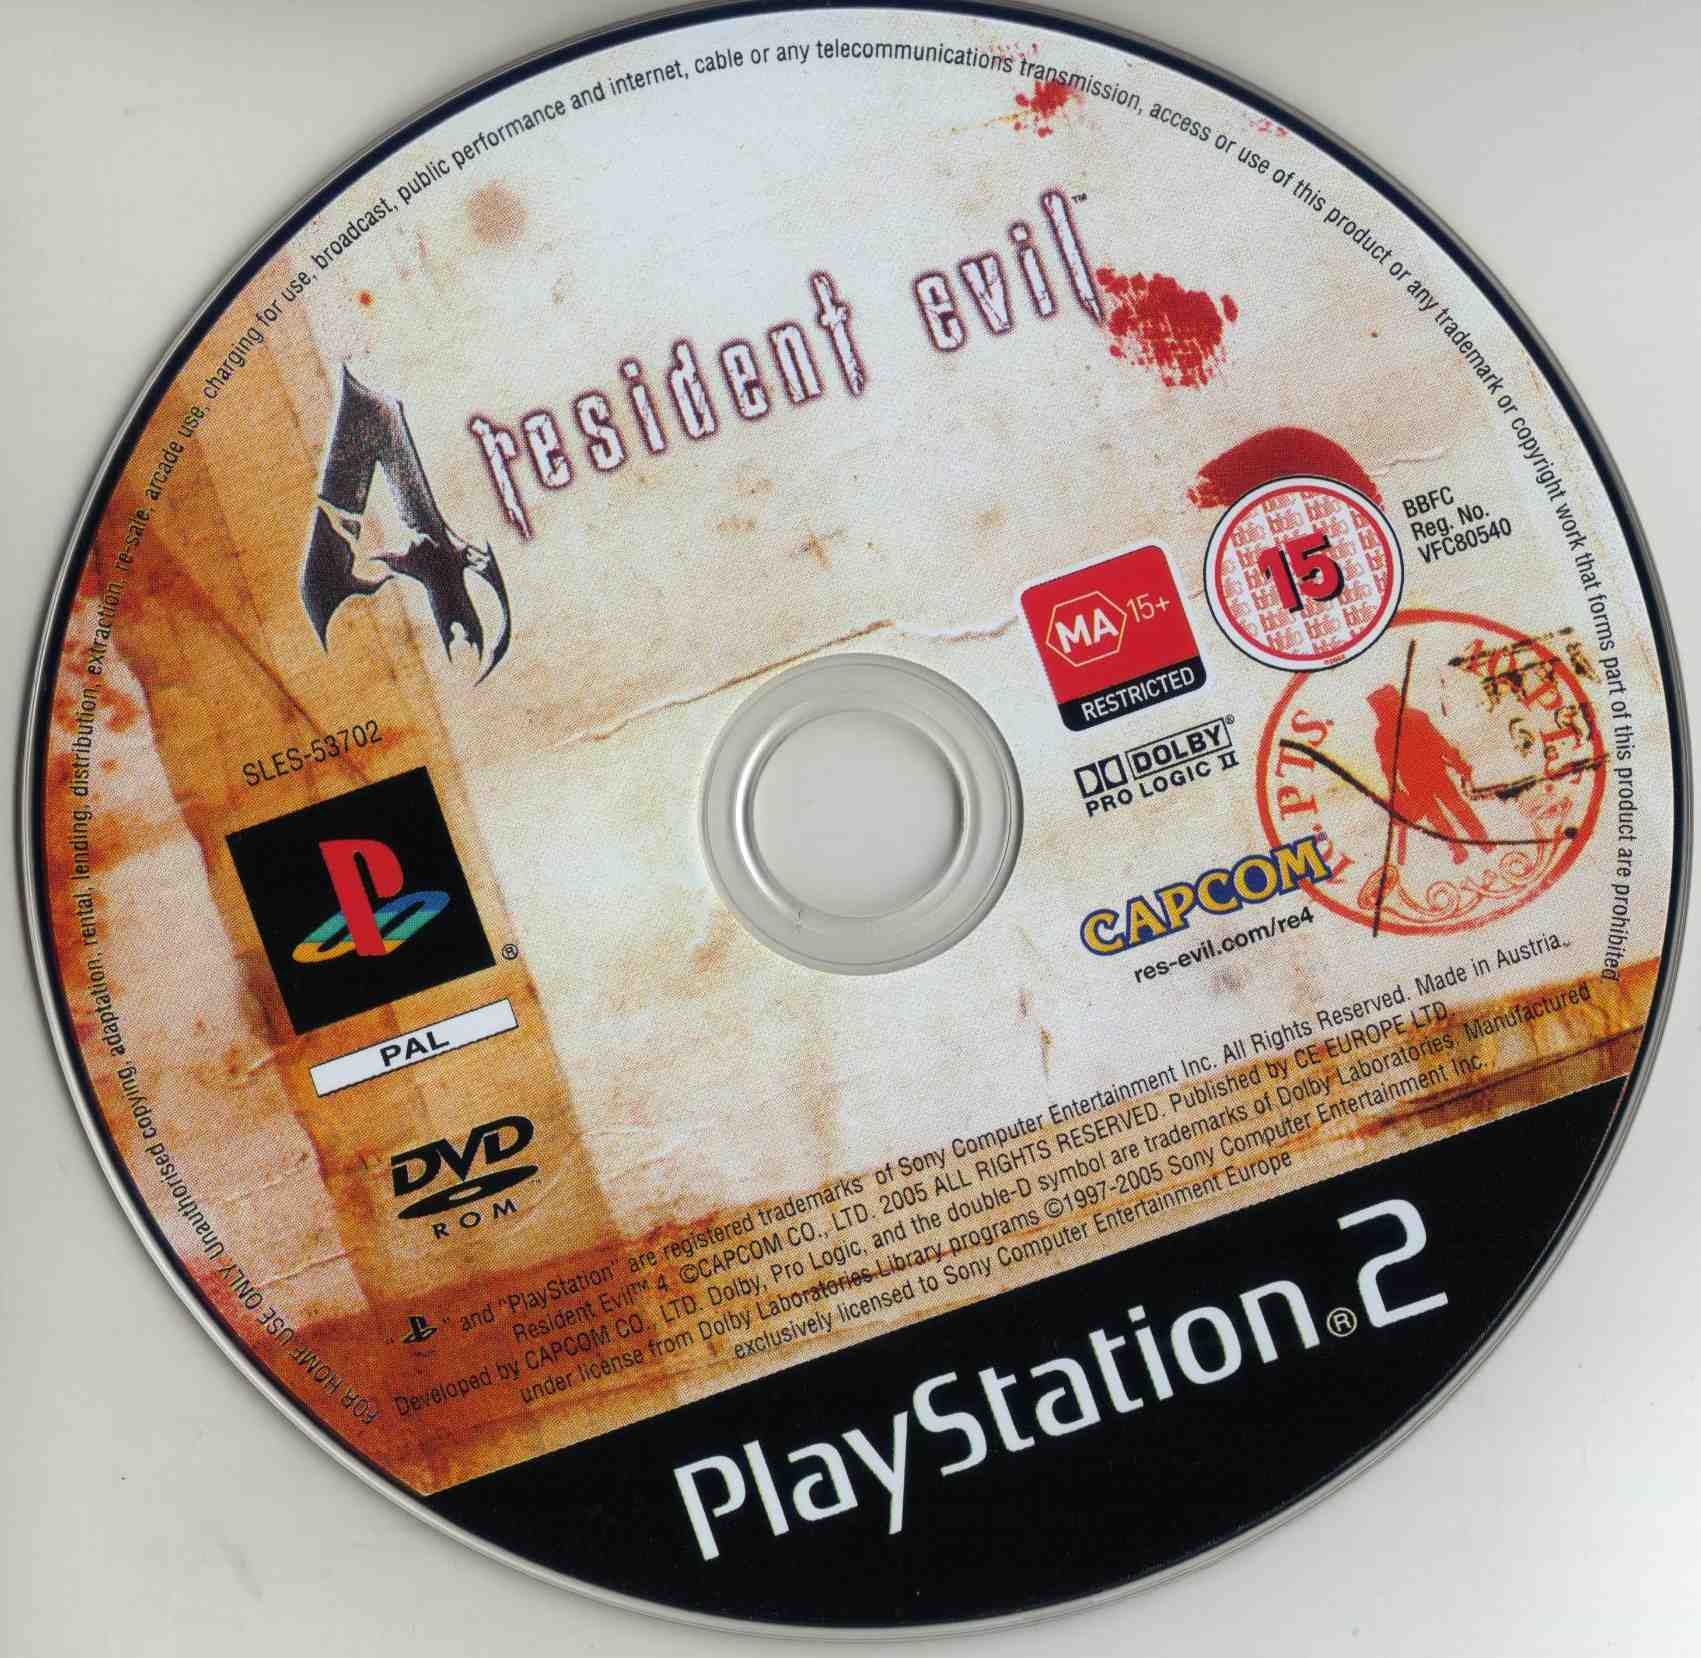 Resident Evil 4 Ps2 Cdd Playstation 2 Covers Cover Century